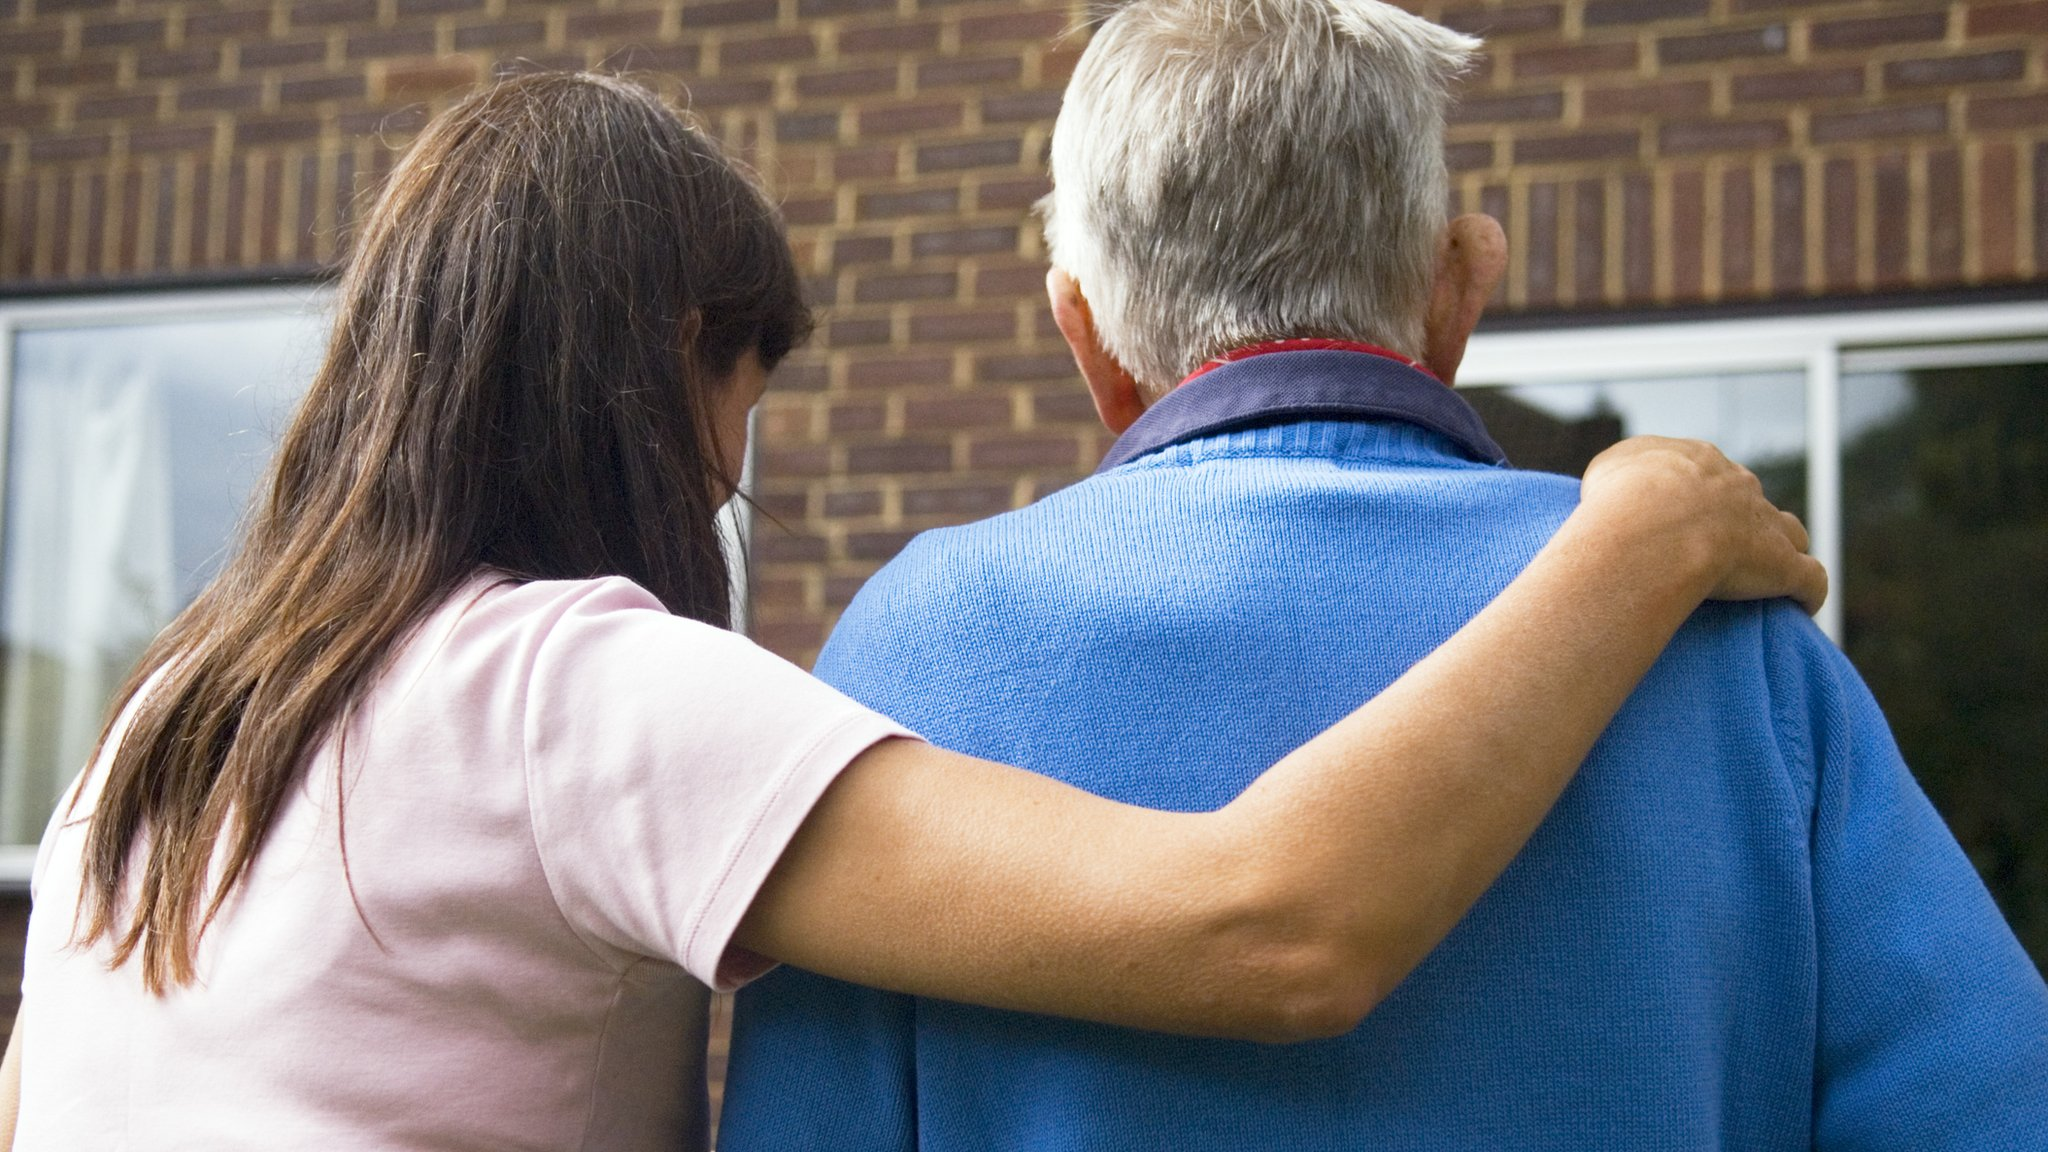 General election 2017: Tories 'won't look again' at social care plans